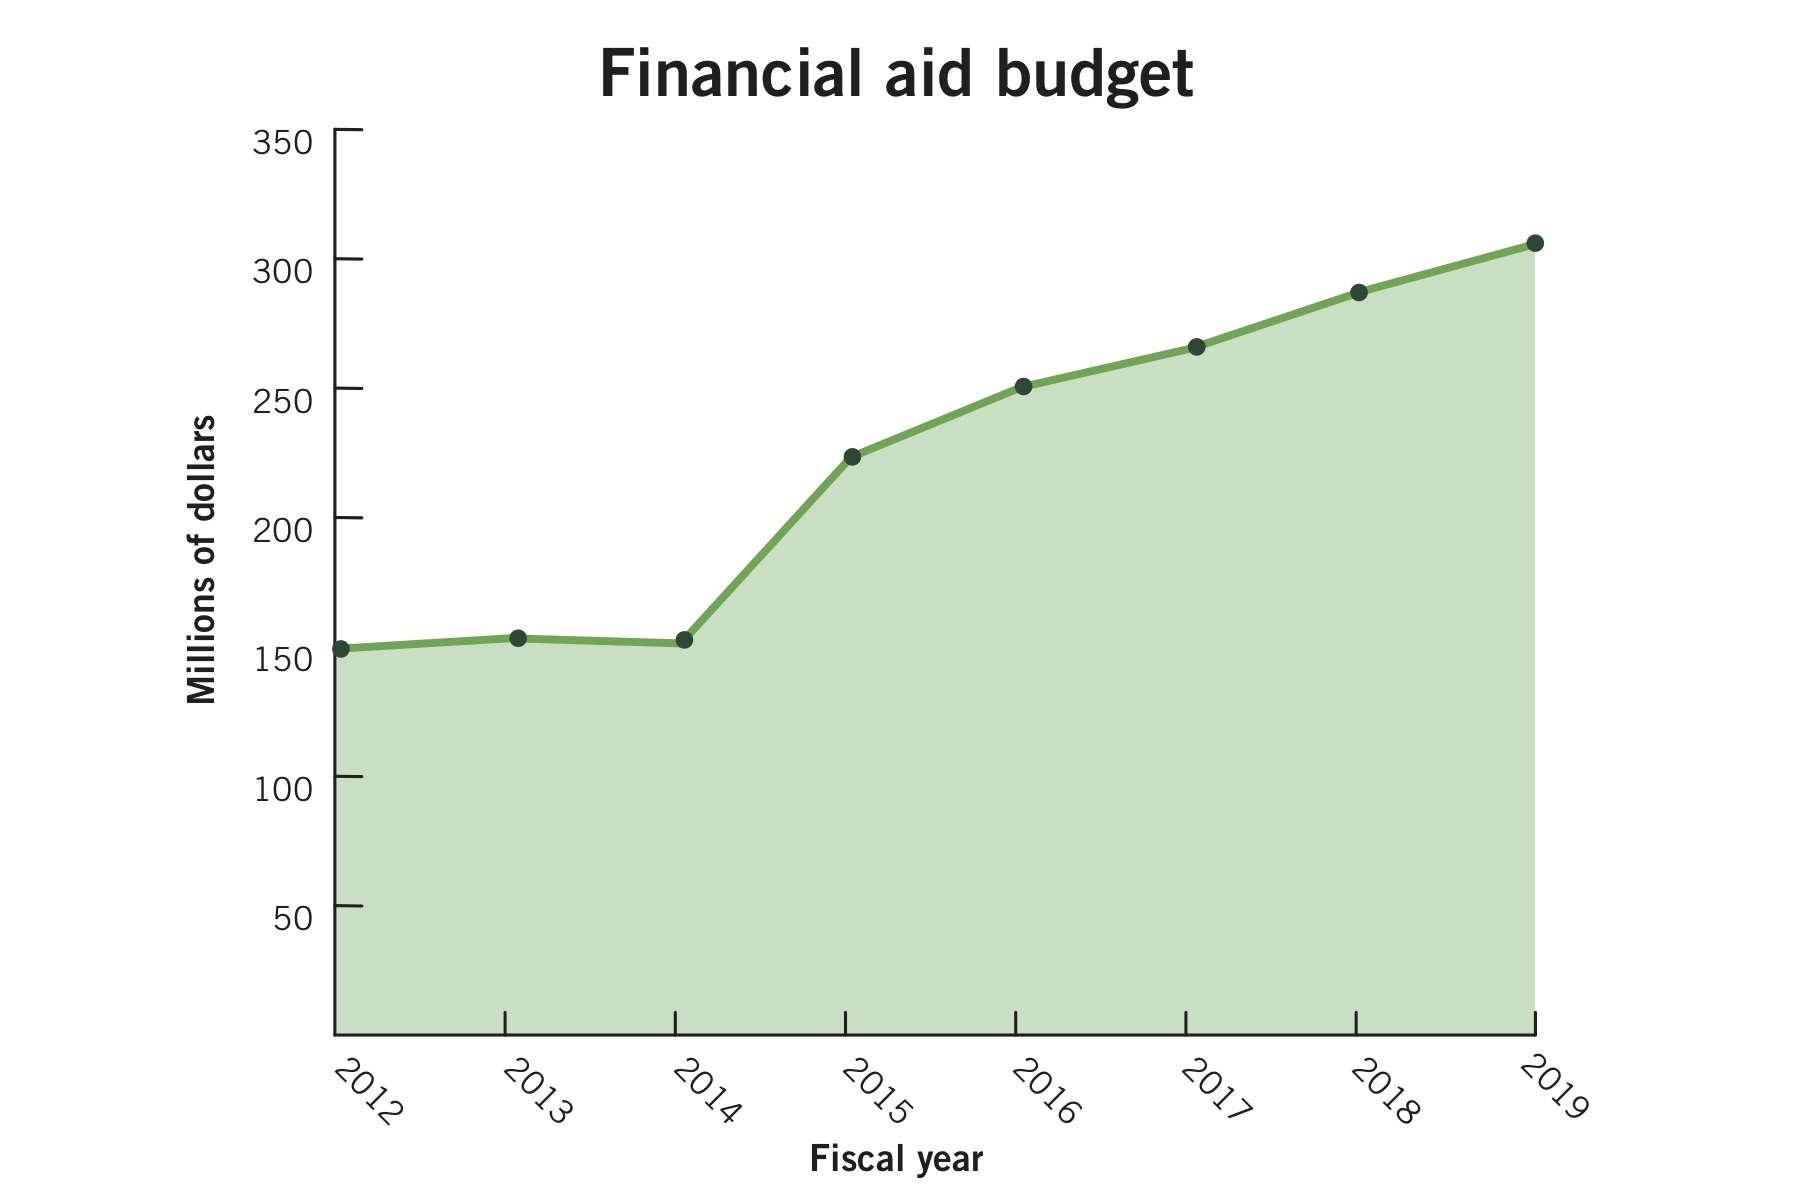 Financial aid budget swells for fifth consecutive year – The GW Hatchet